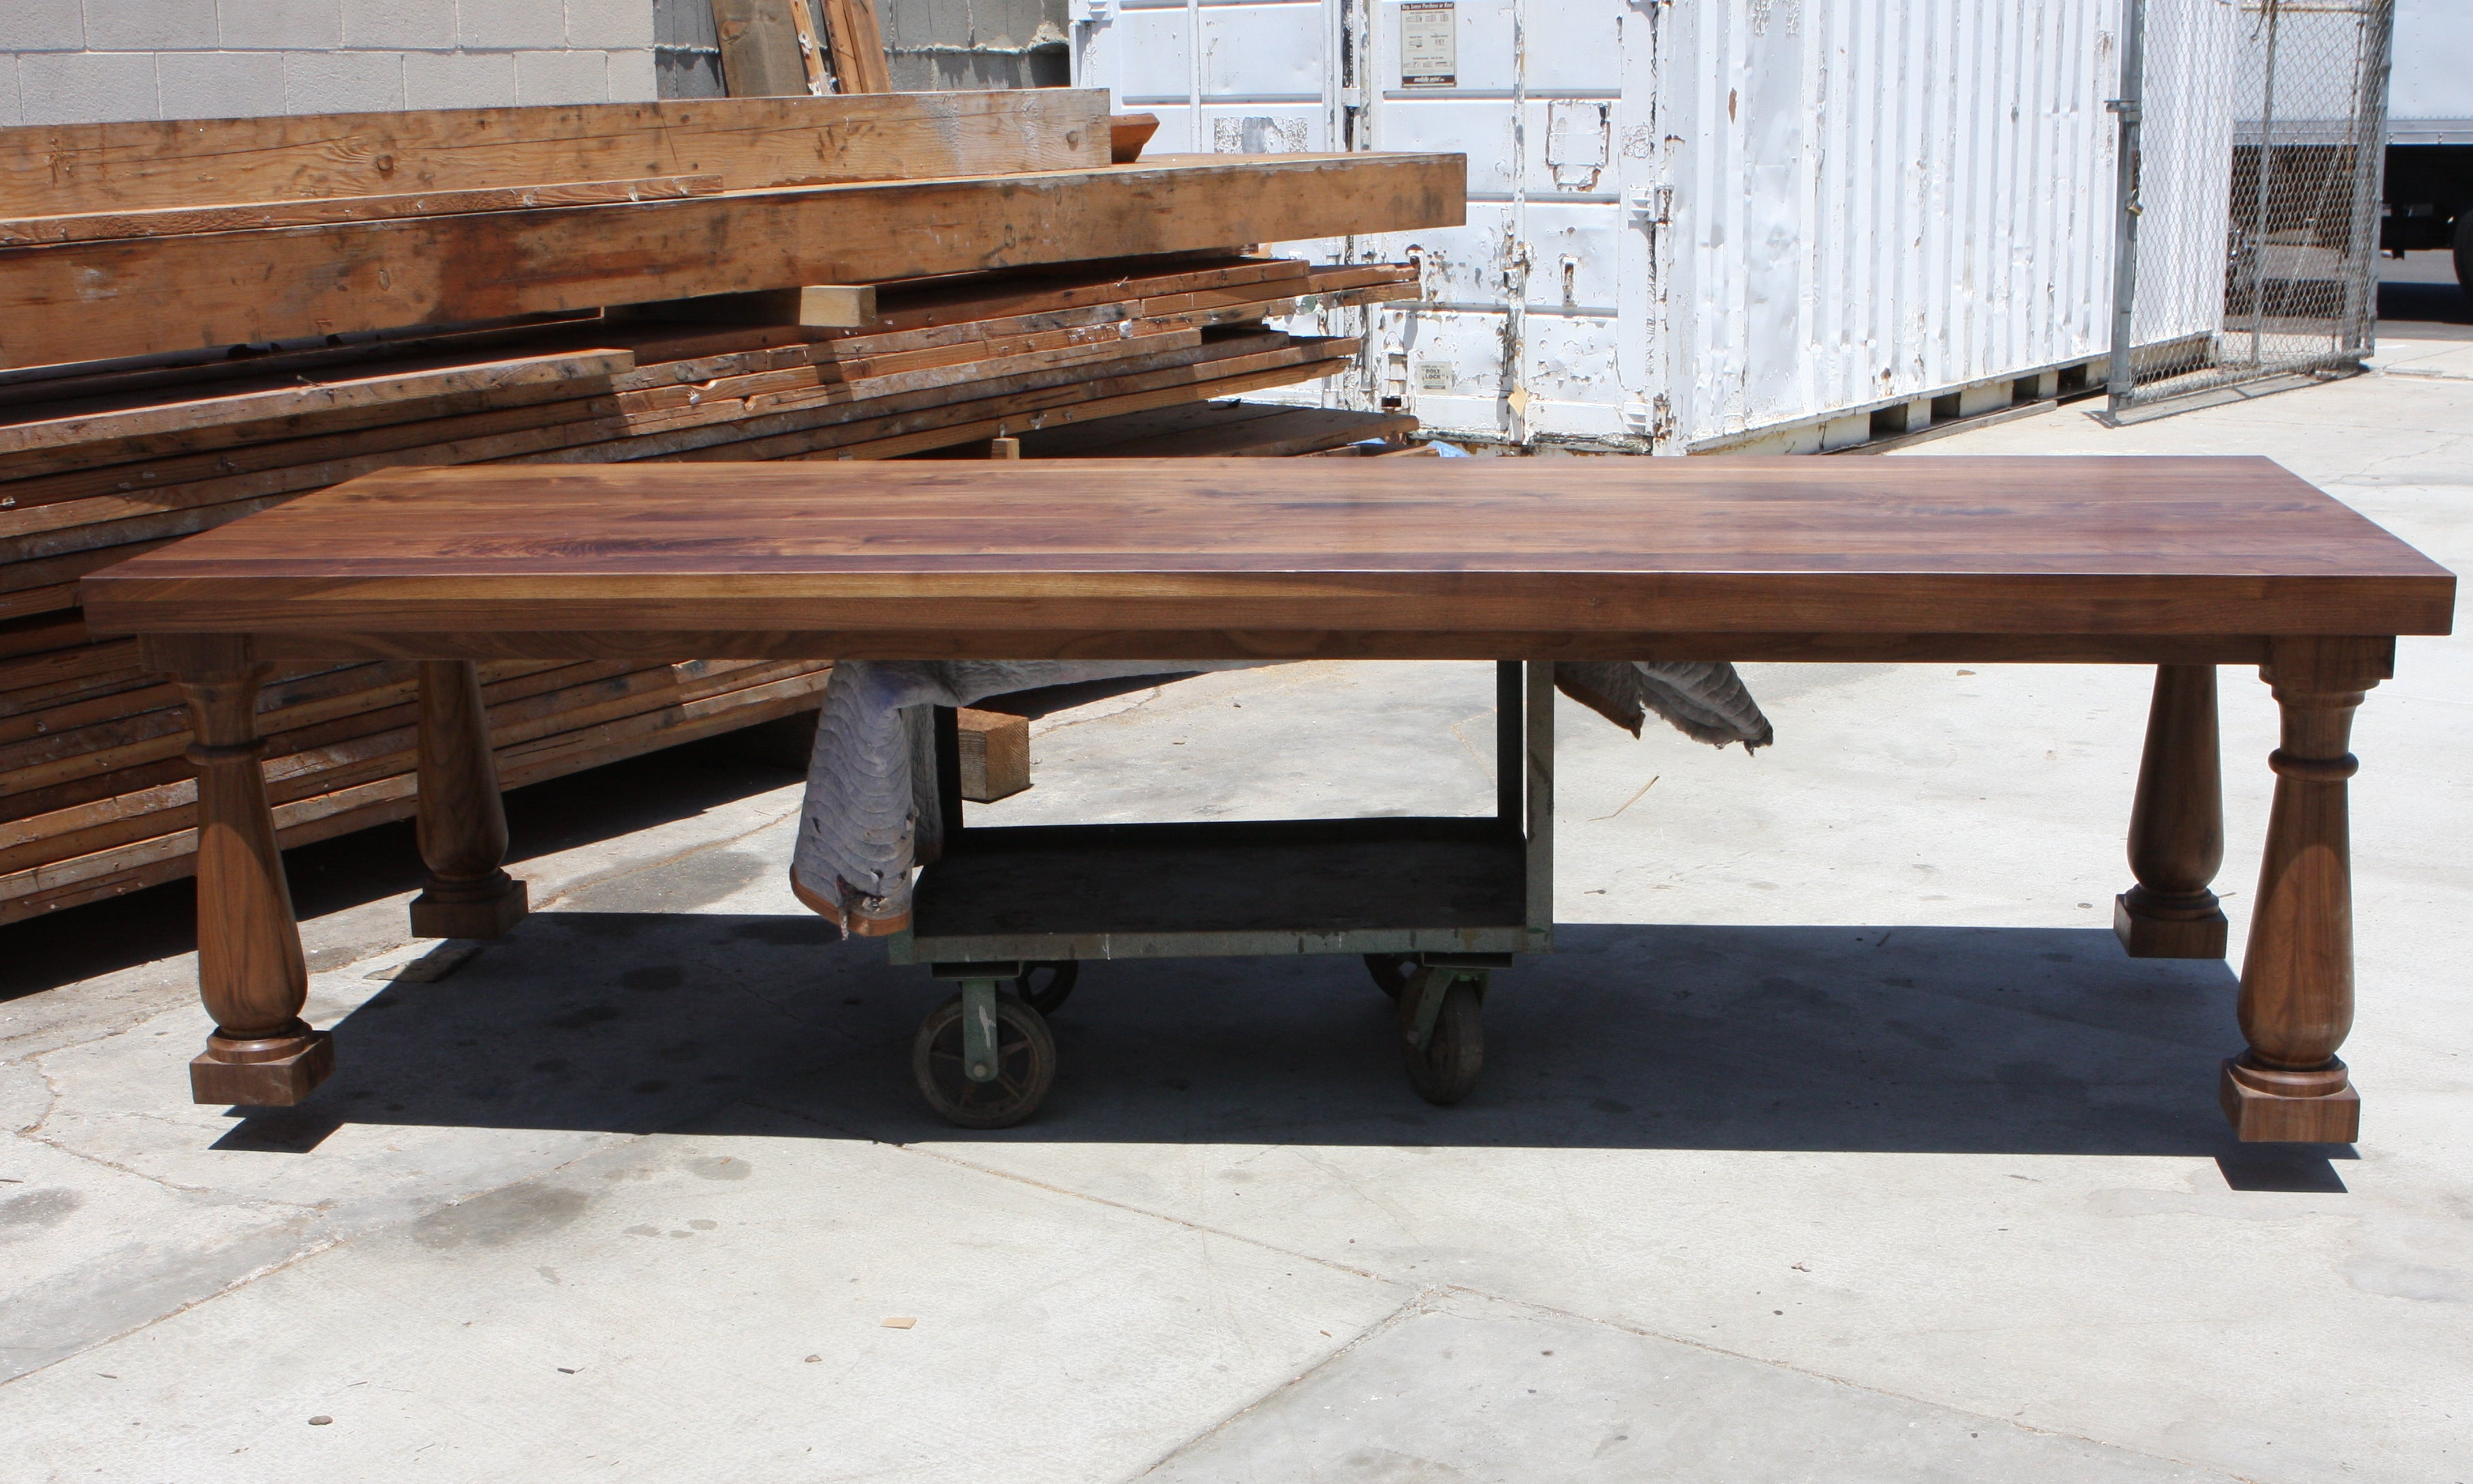 Postobello dining table built in solid walnut